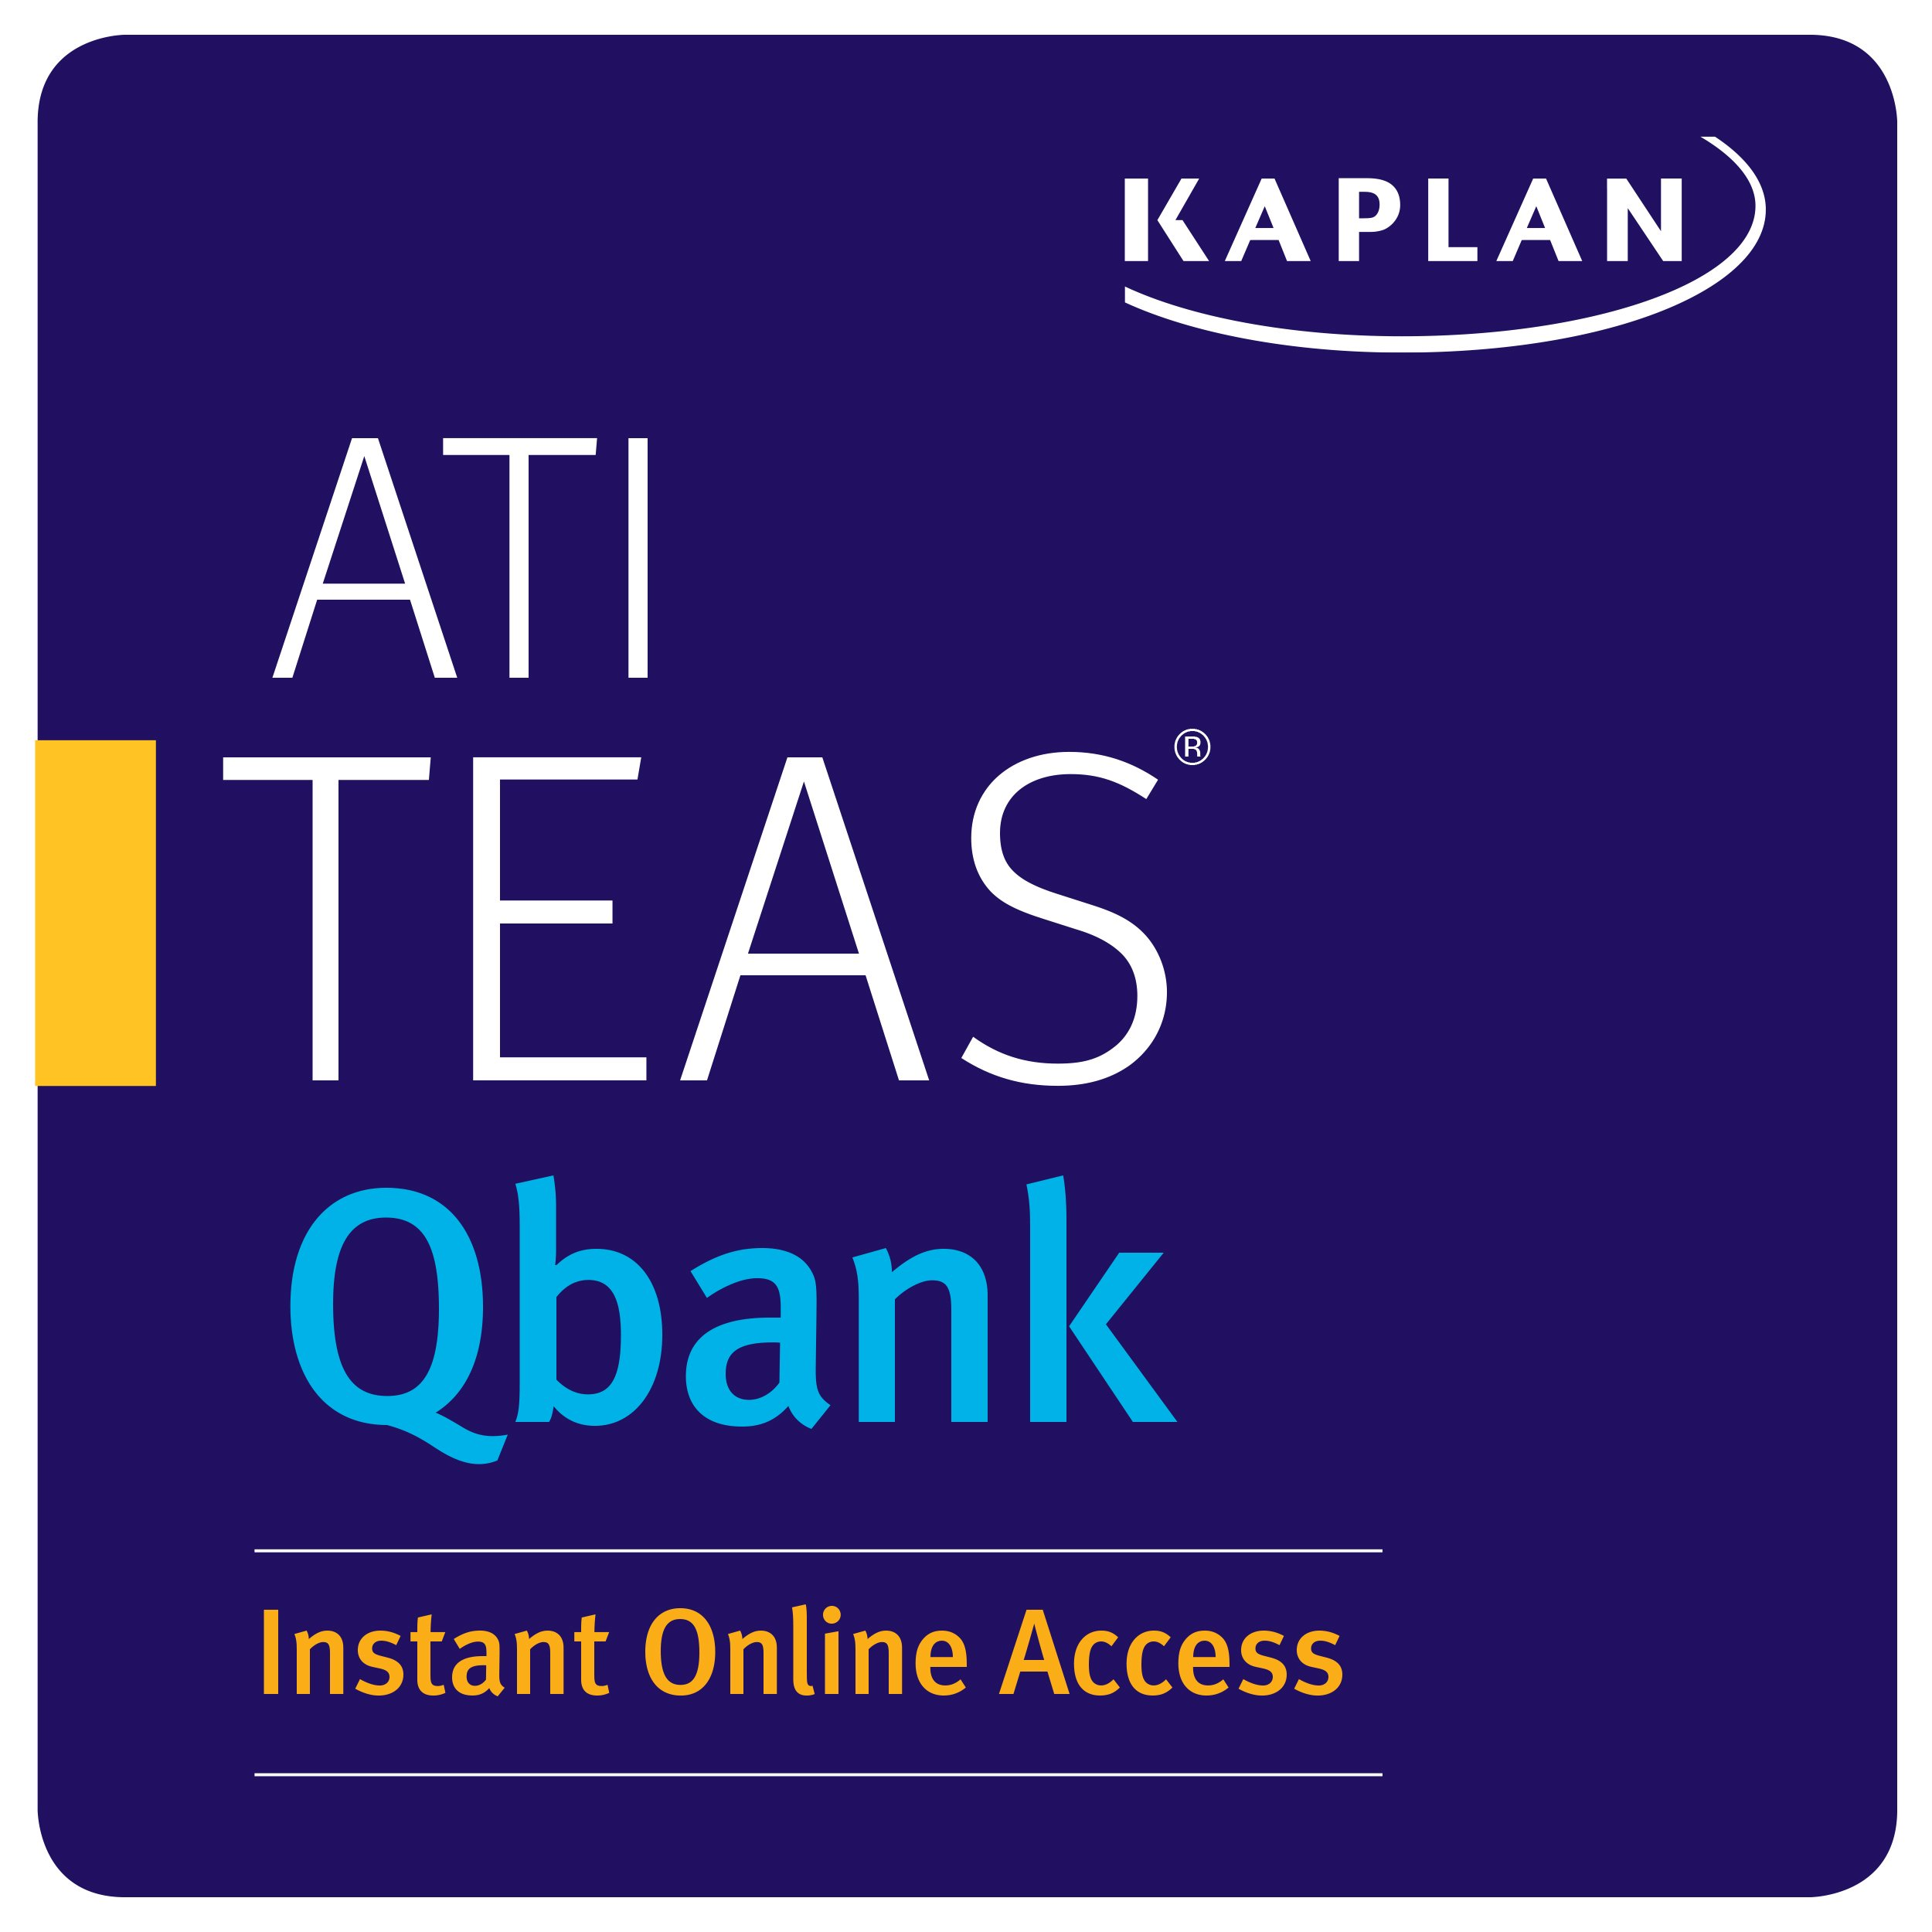 ATI TEAS Qbank | 1 month access by Kaplan Nursing